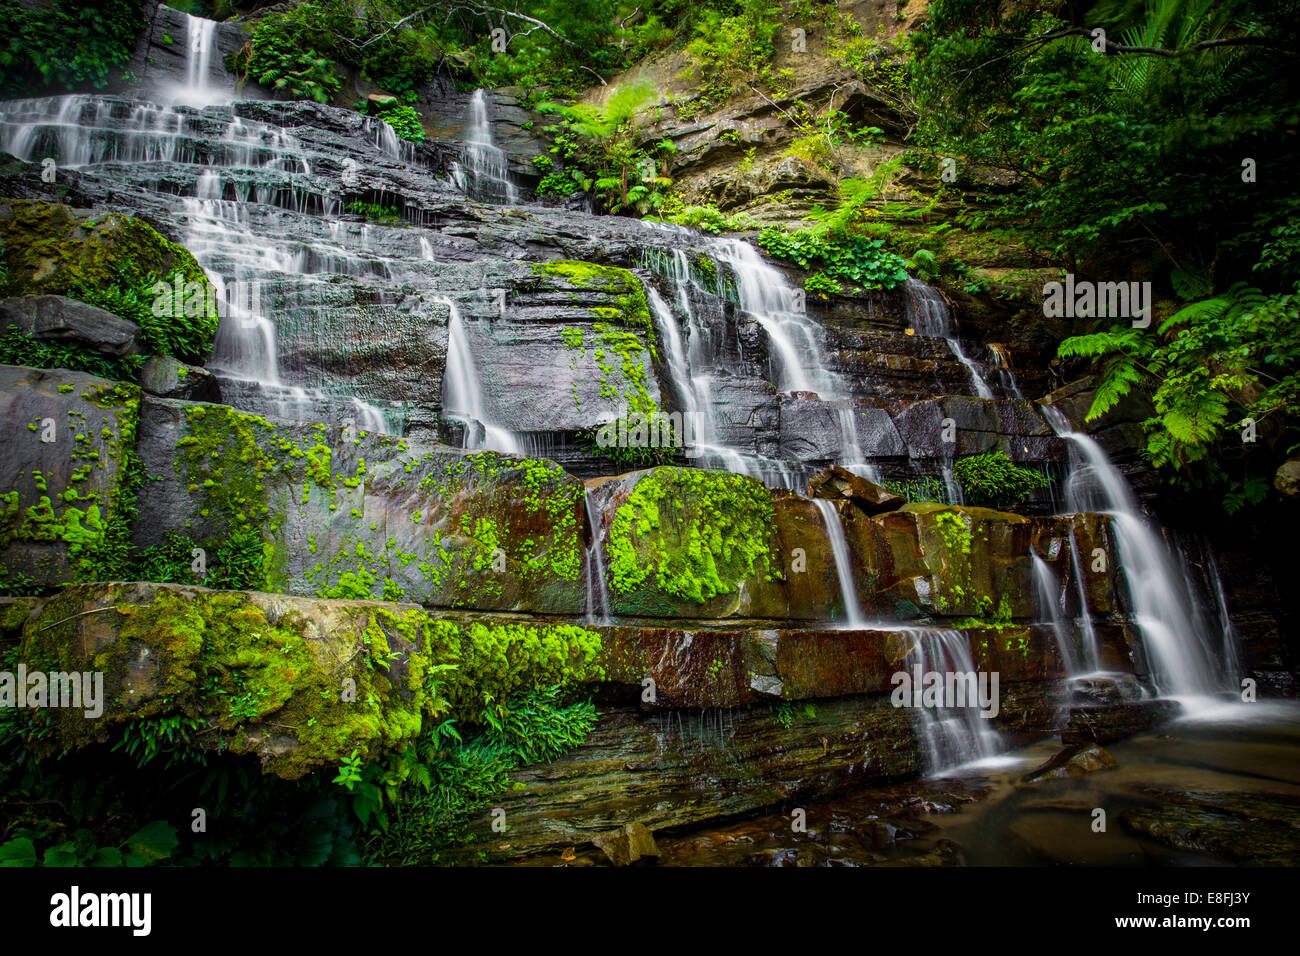 Waterfalls over rocks, Okinawa, Japan - Stock Image